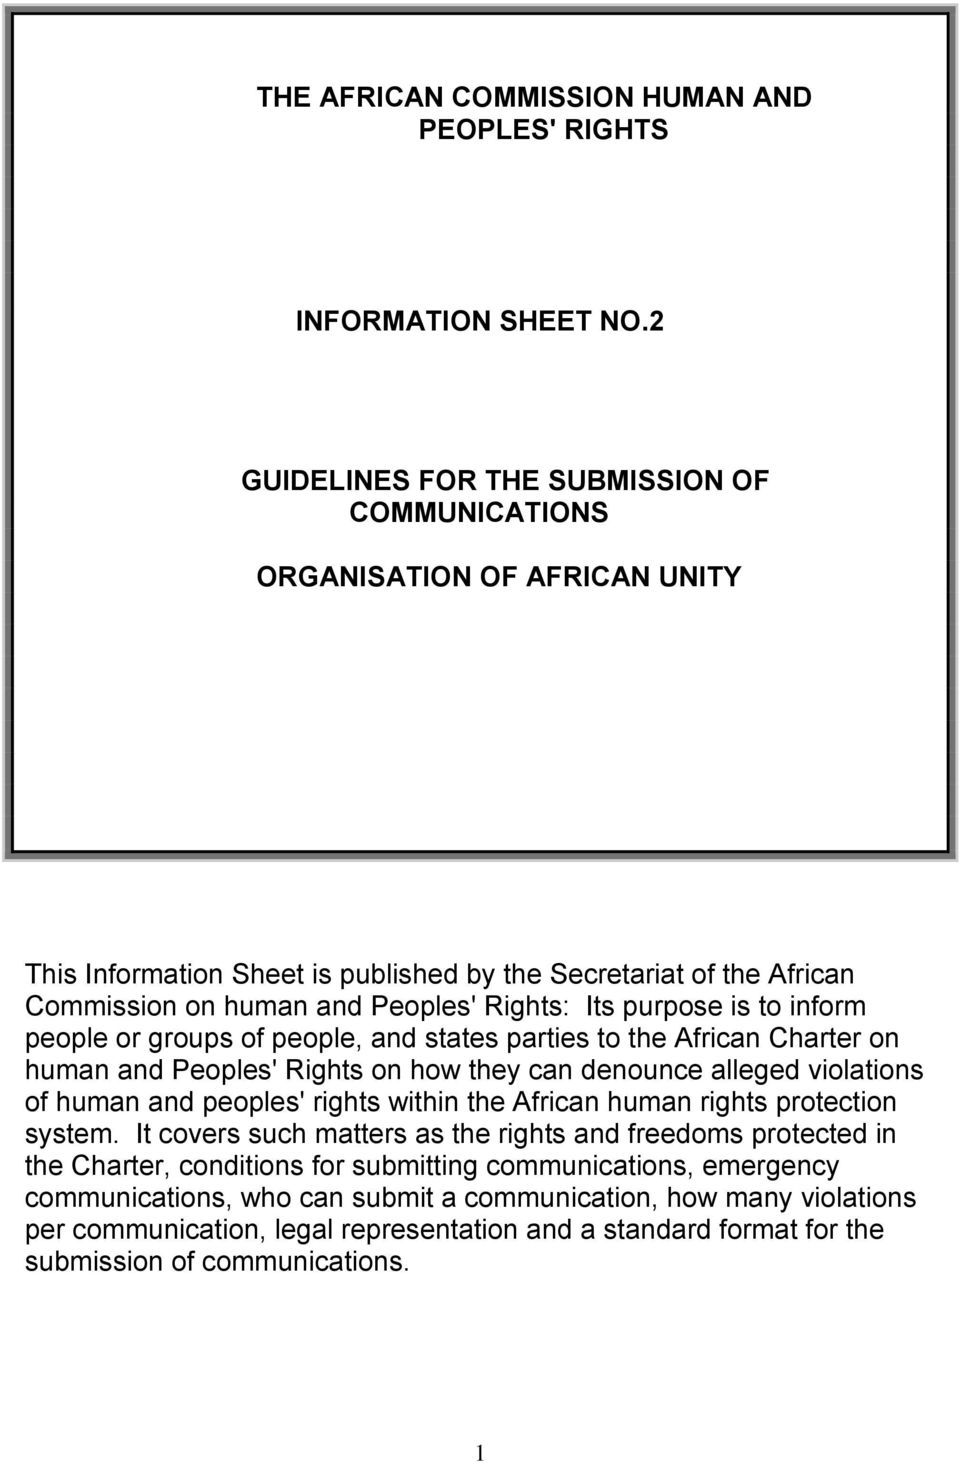 purpose is to inform people or groups of people, and states parties to the African Charter on human and Peoples' Rights on how they can denounce alleged violations of human and peoples' rights within